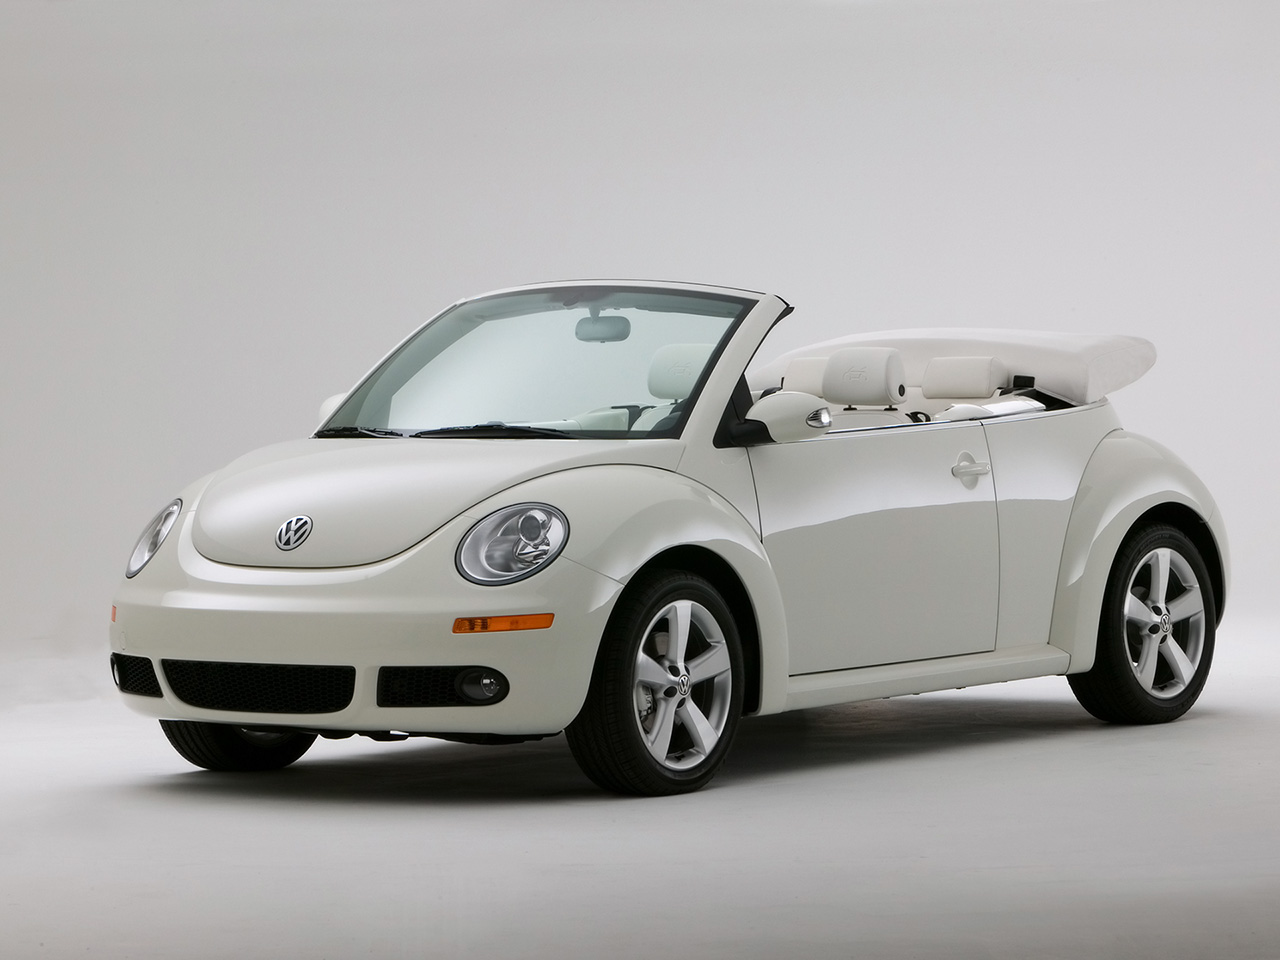 all new volkswagen beetle cabrio will be available in november 2012 diverse information. Black Bedroom Furniture Sets. Home Design Ideas